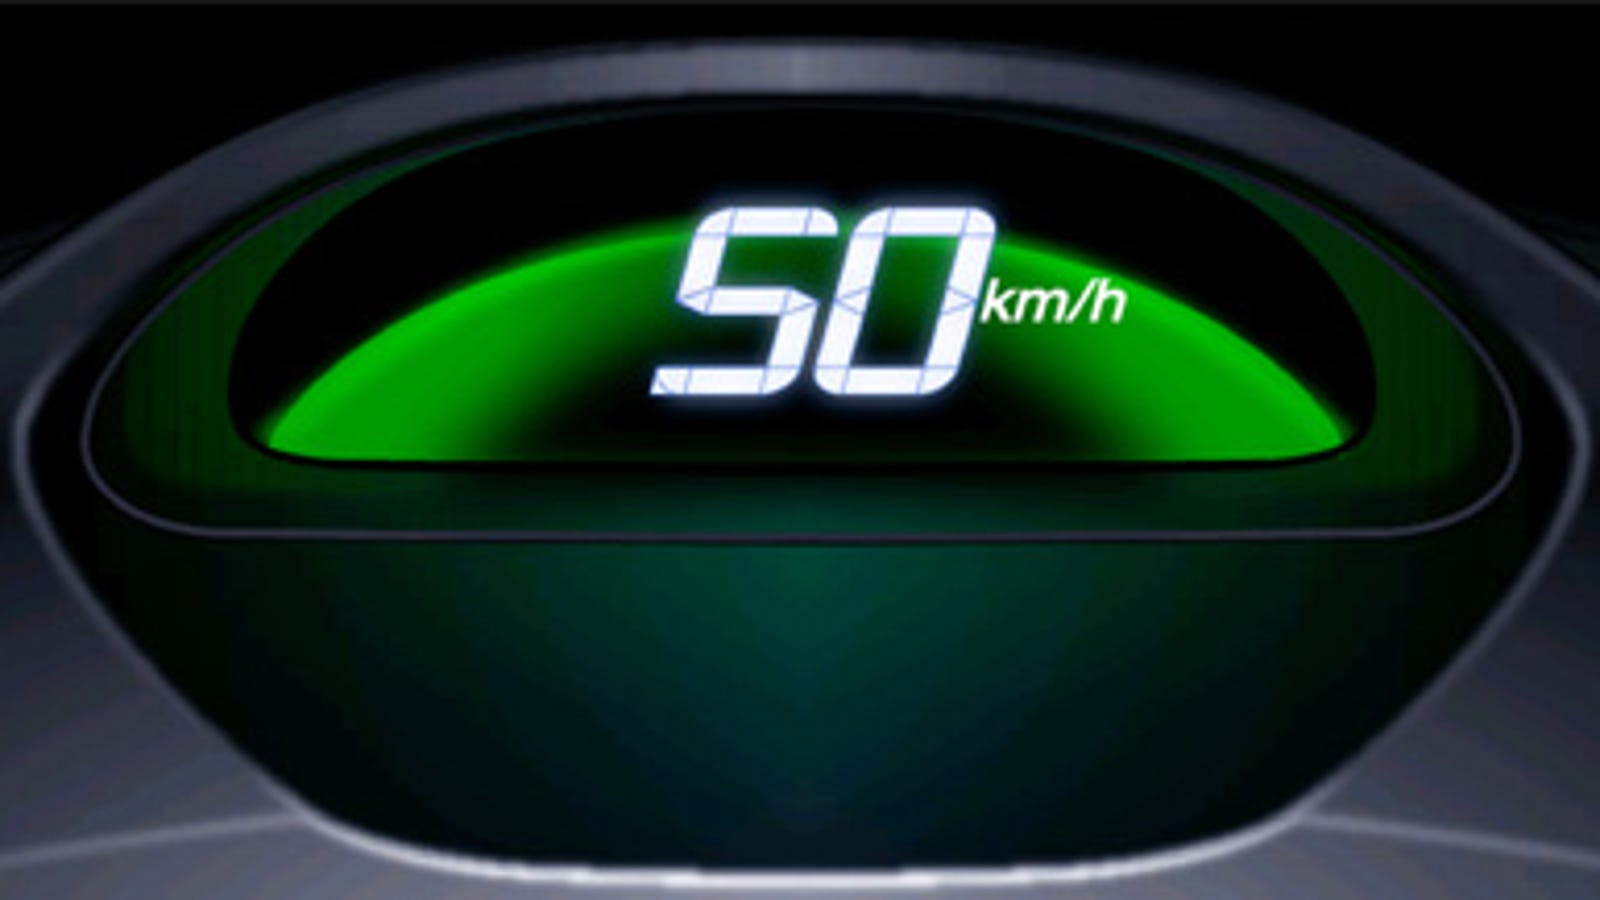 Honda Speedometer Changes Color When You Drive Crazy